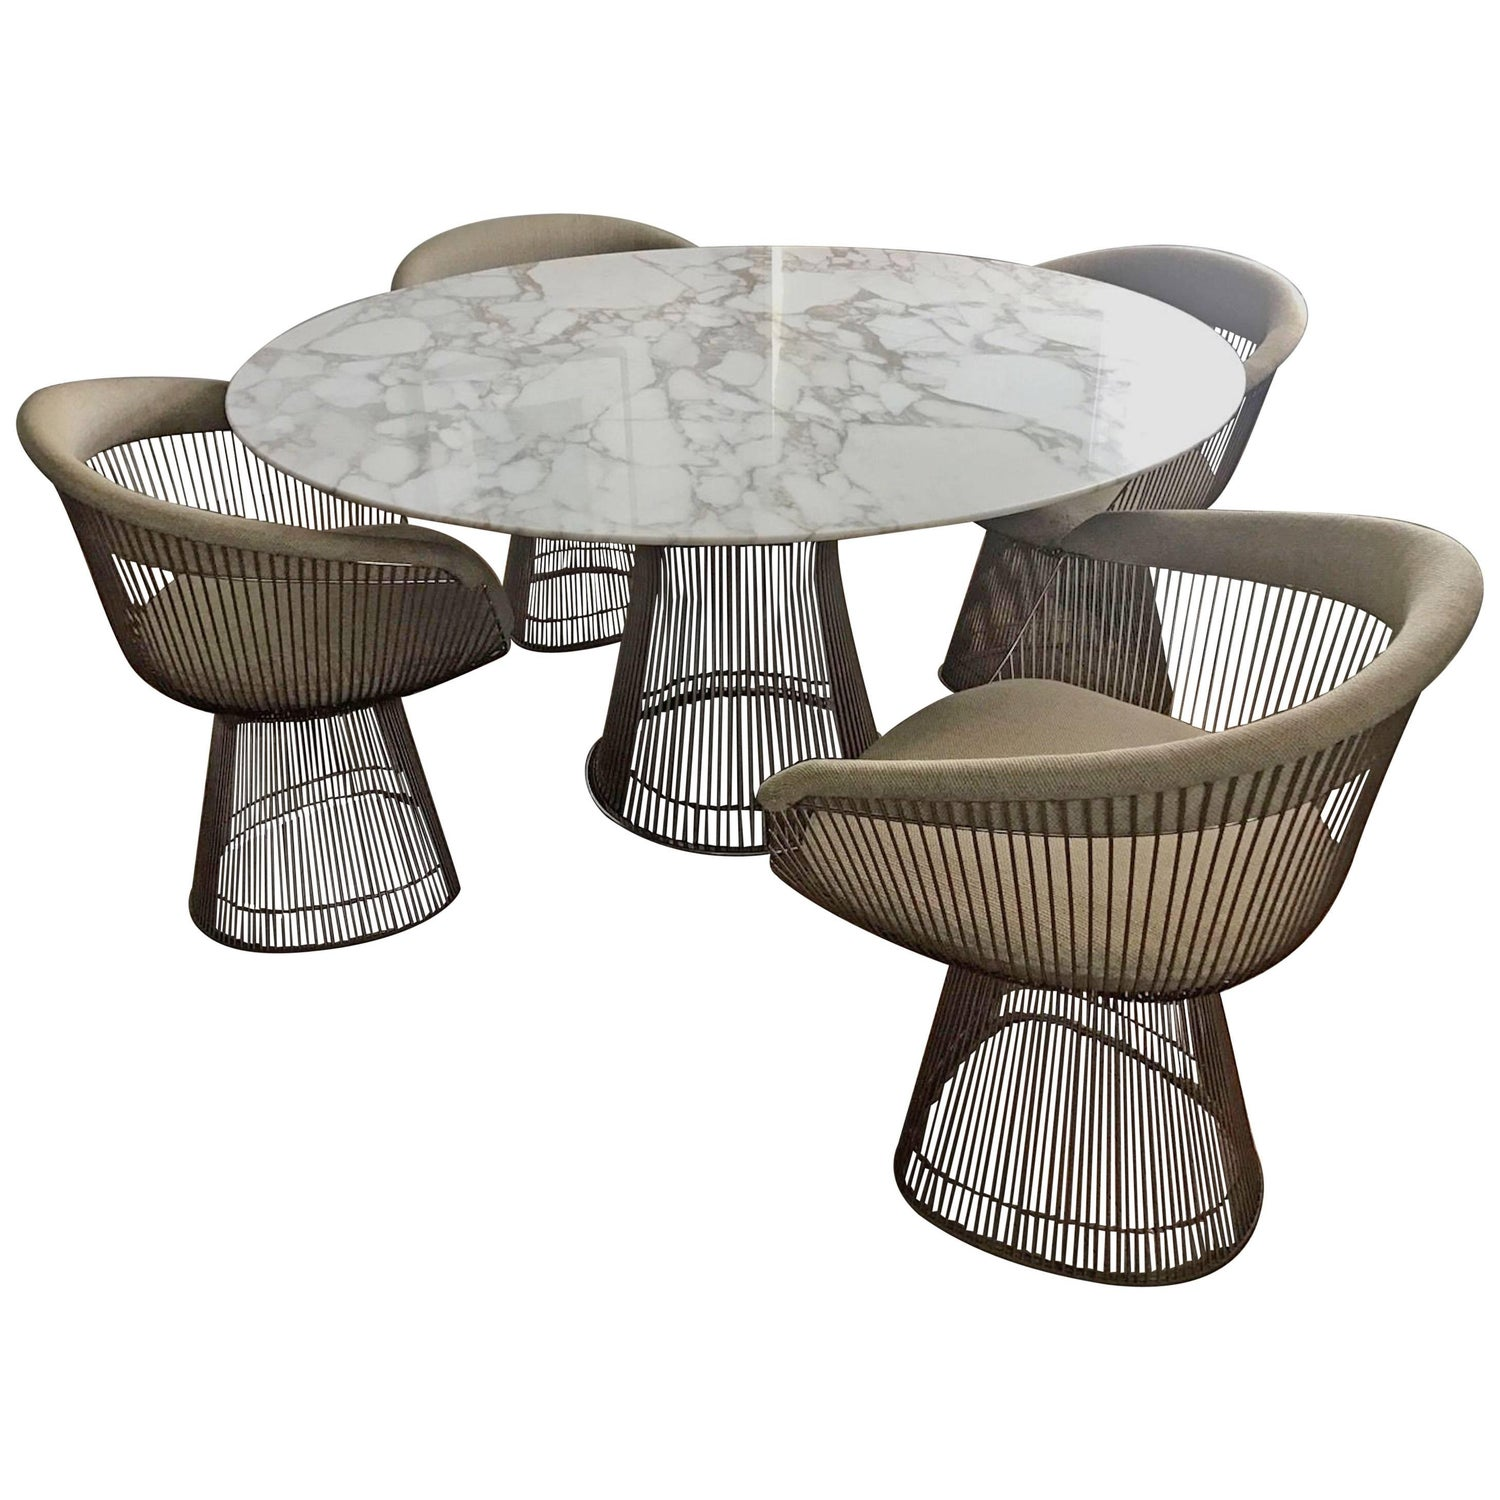 Knoll International Warren Platner Dining Set Marble Table and